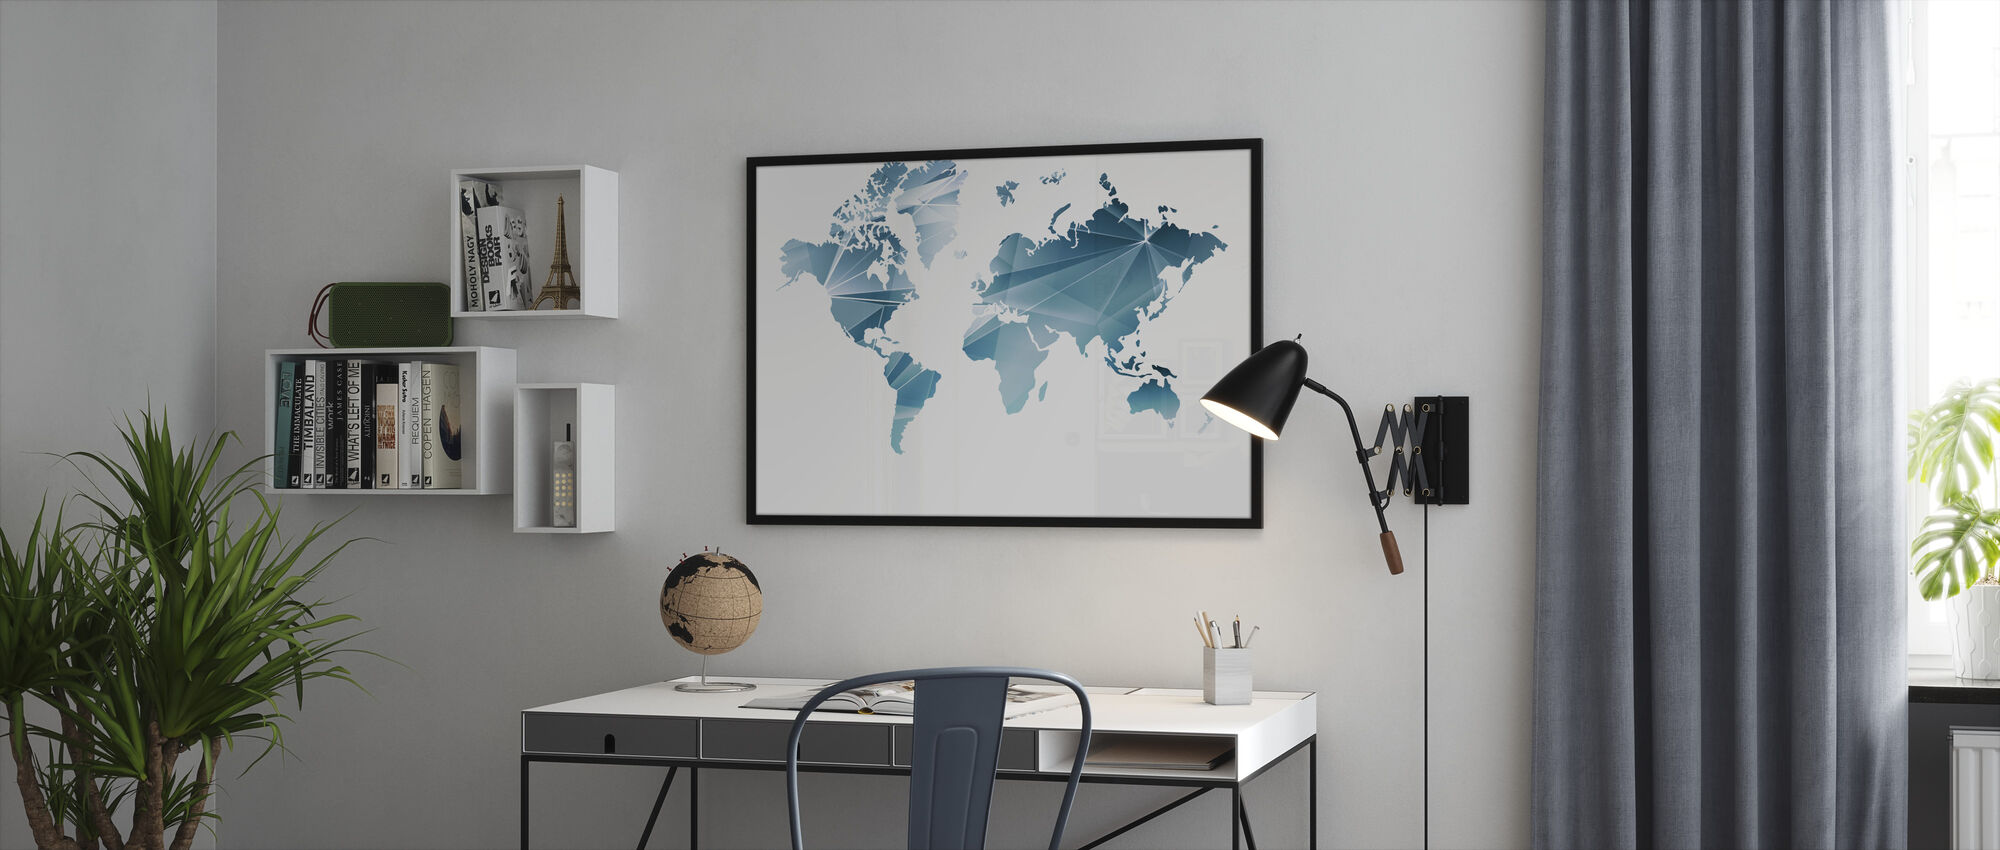 Geometric Concept World Map - Framed print - Office